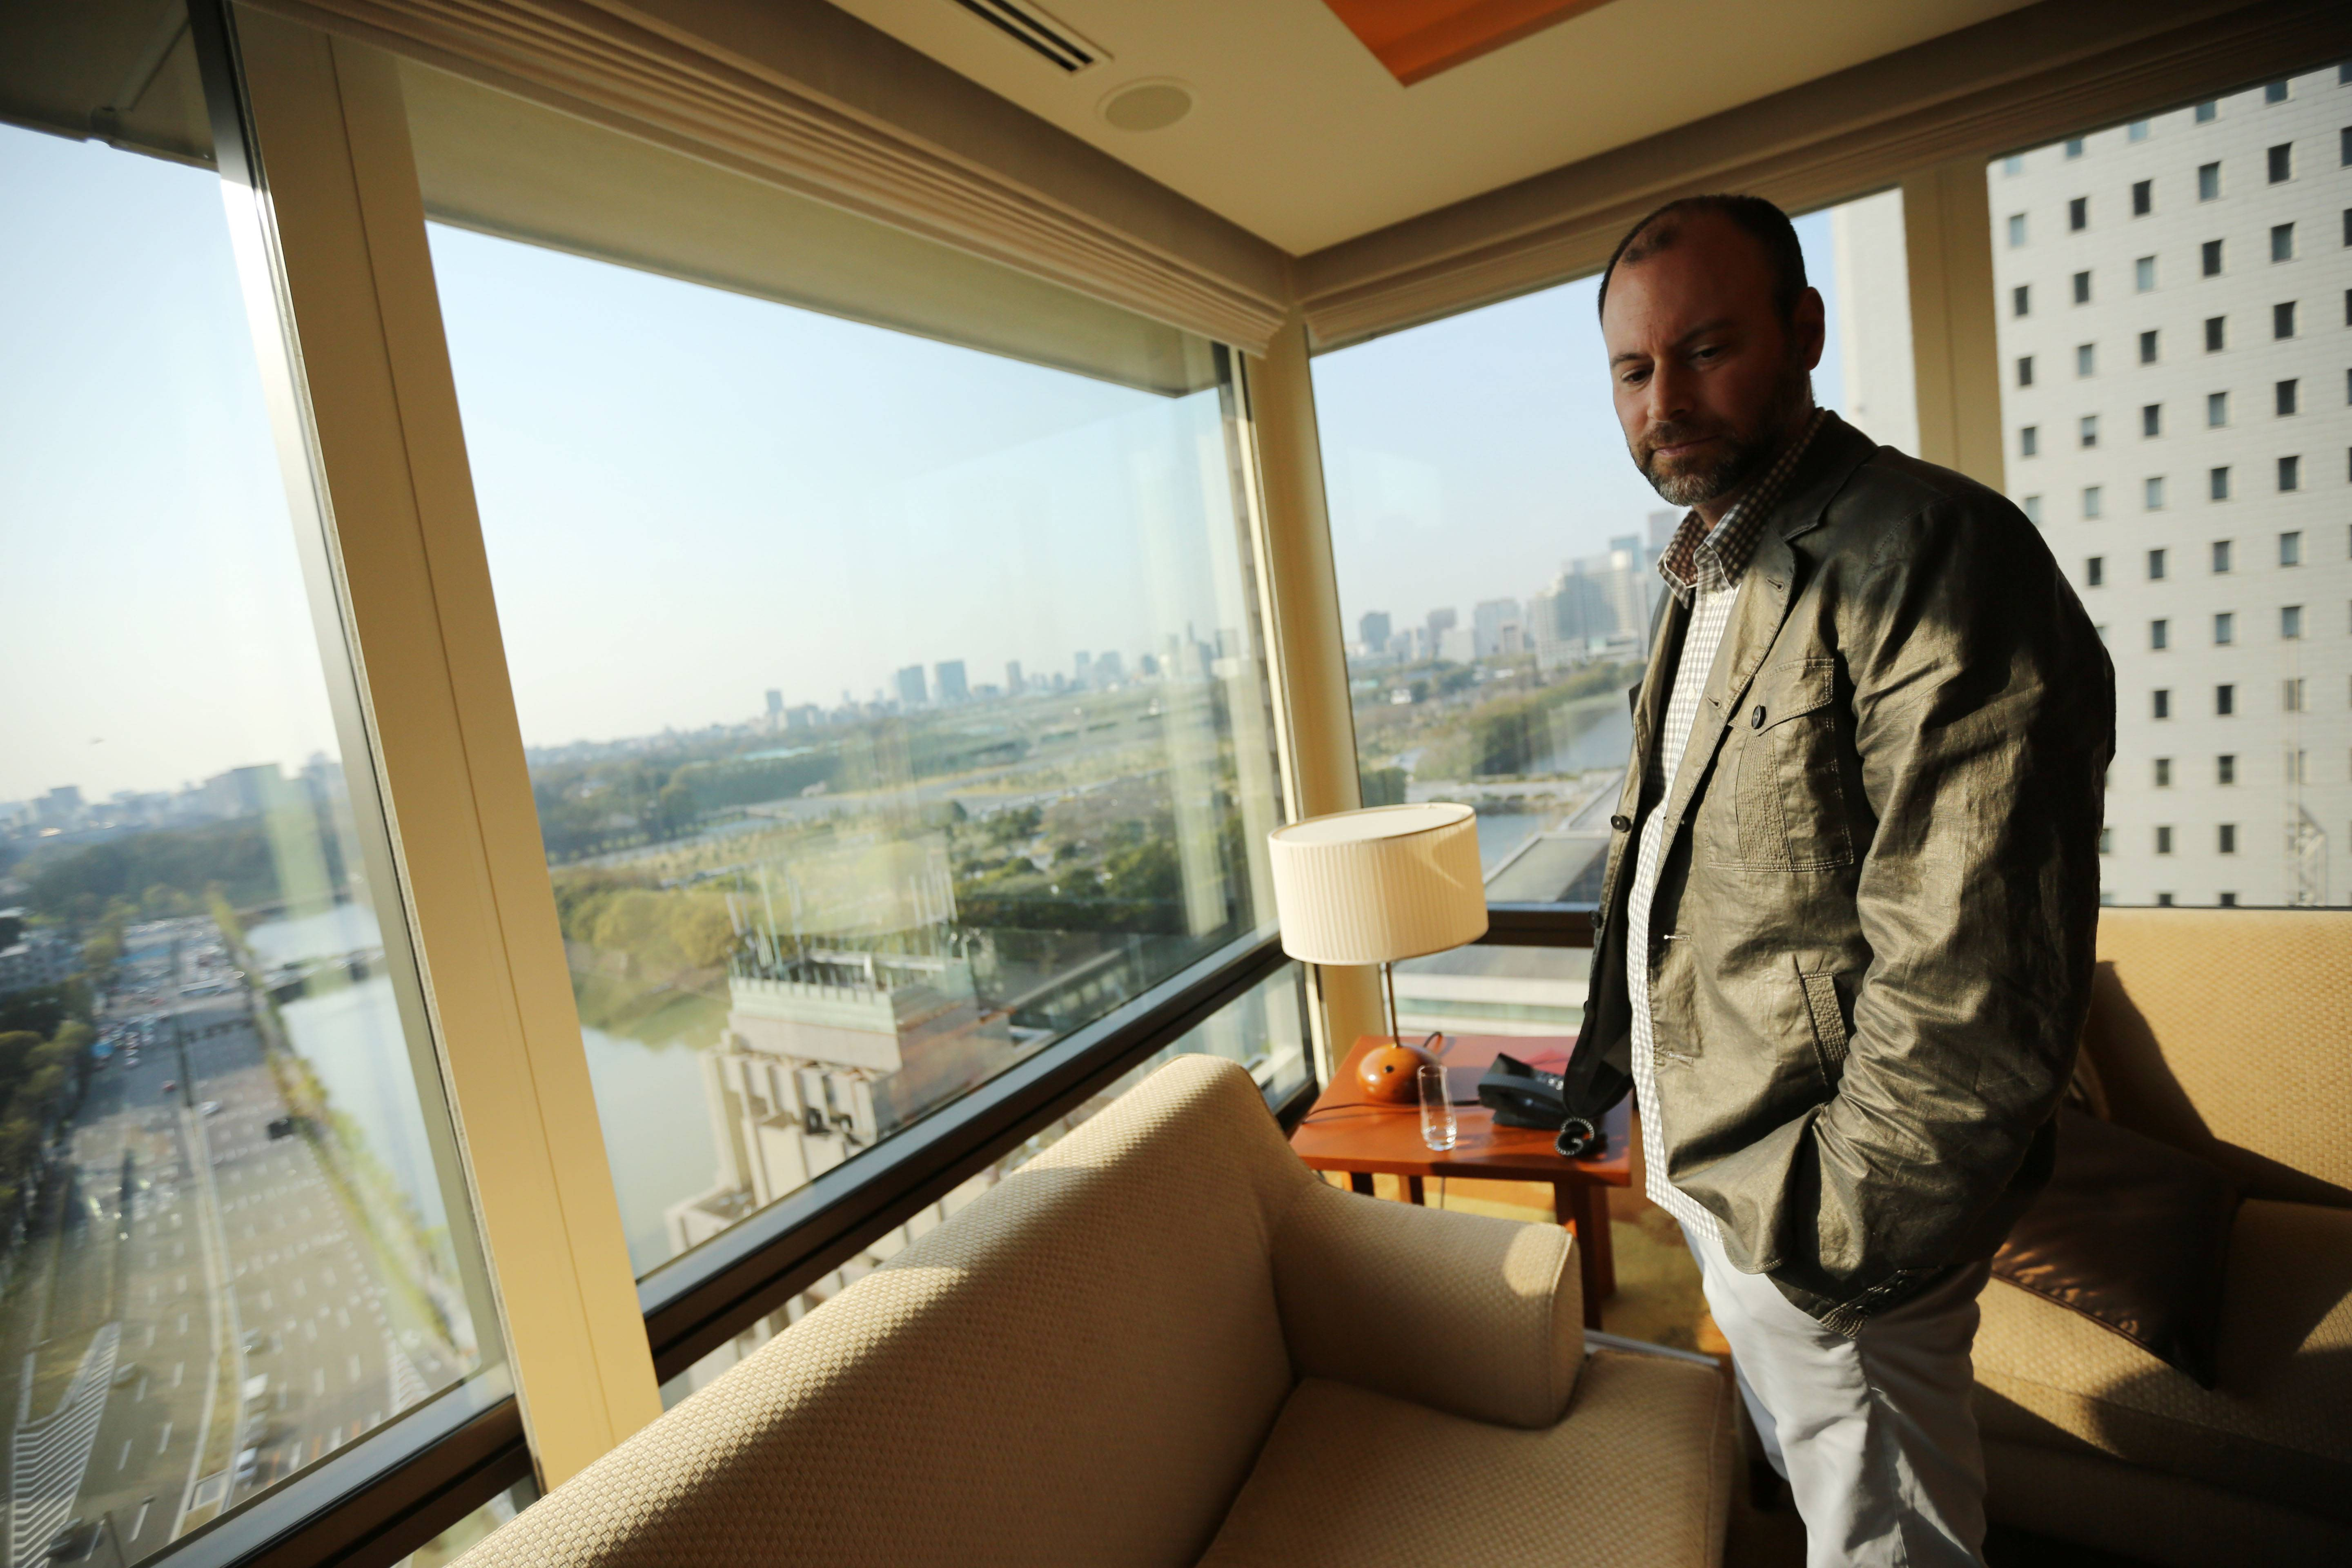 Noel Biderman, chief executive of Avid Life Media Inc., which operates AshleyMadison.com., by a hotel room window overlooking the Imperial Palace grounds during a photo session in Tokyo.